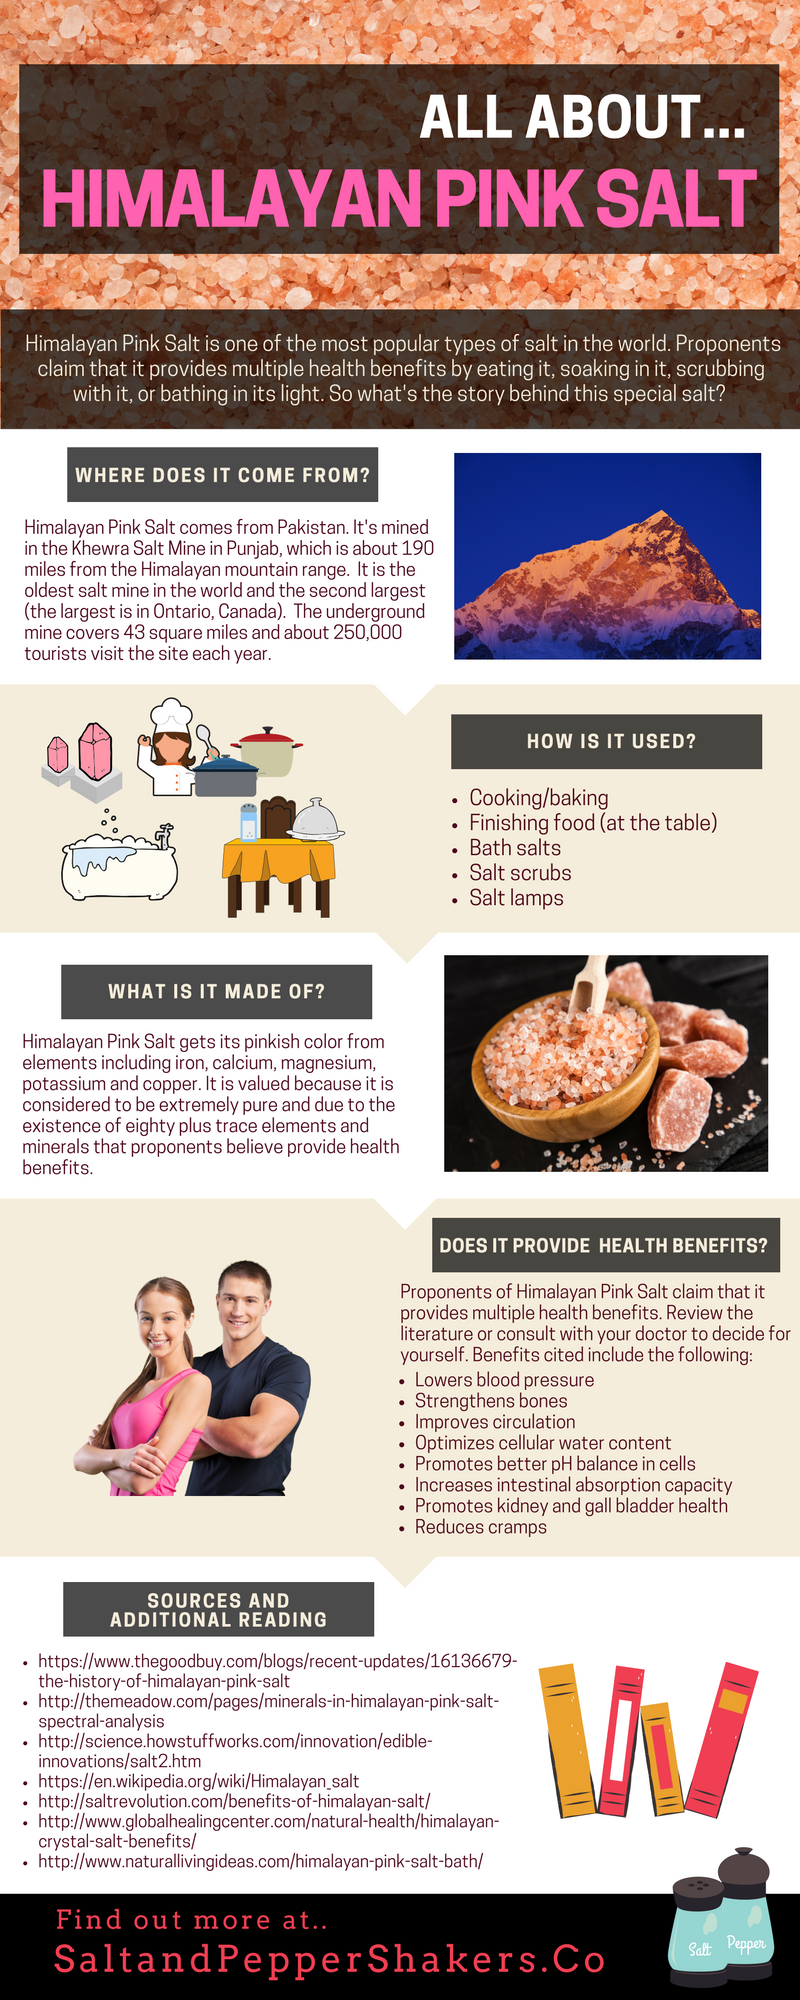 Himalayan Salt Lamp Benefits Wikipedia Delectable All About Himalayan Pink Salt Infographic  Himalayan Pink Salt Inspiration Design